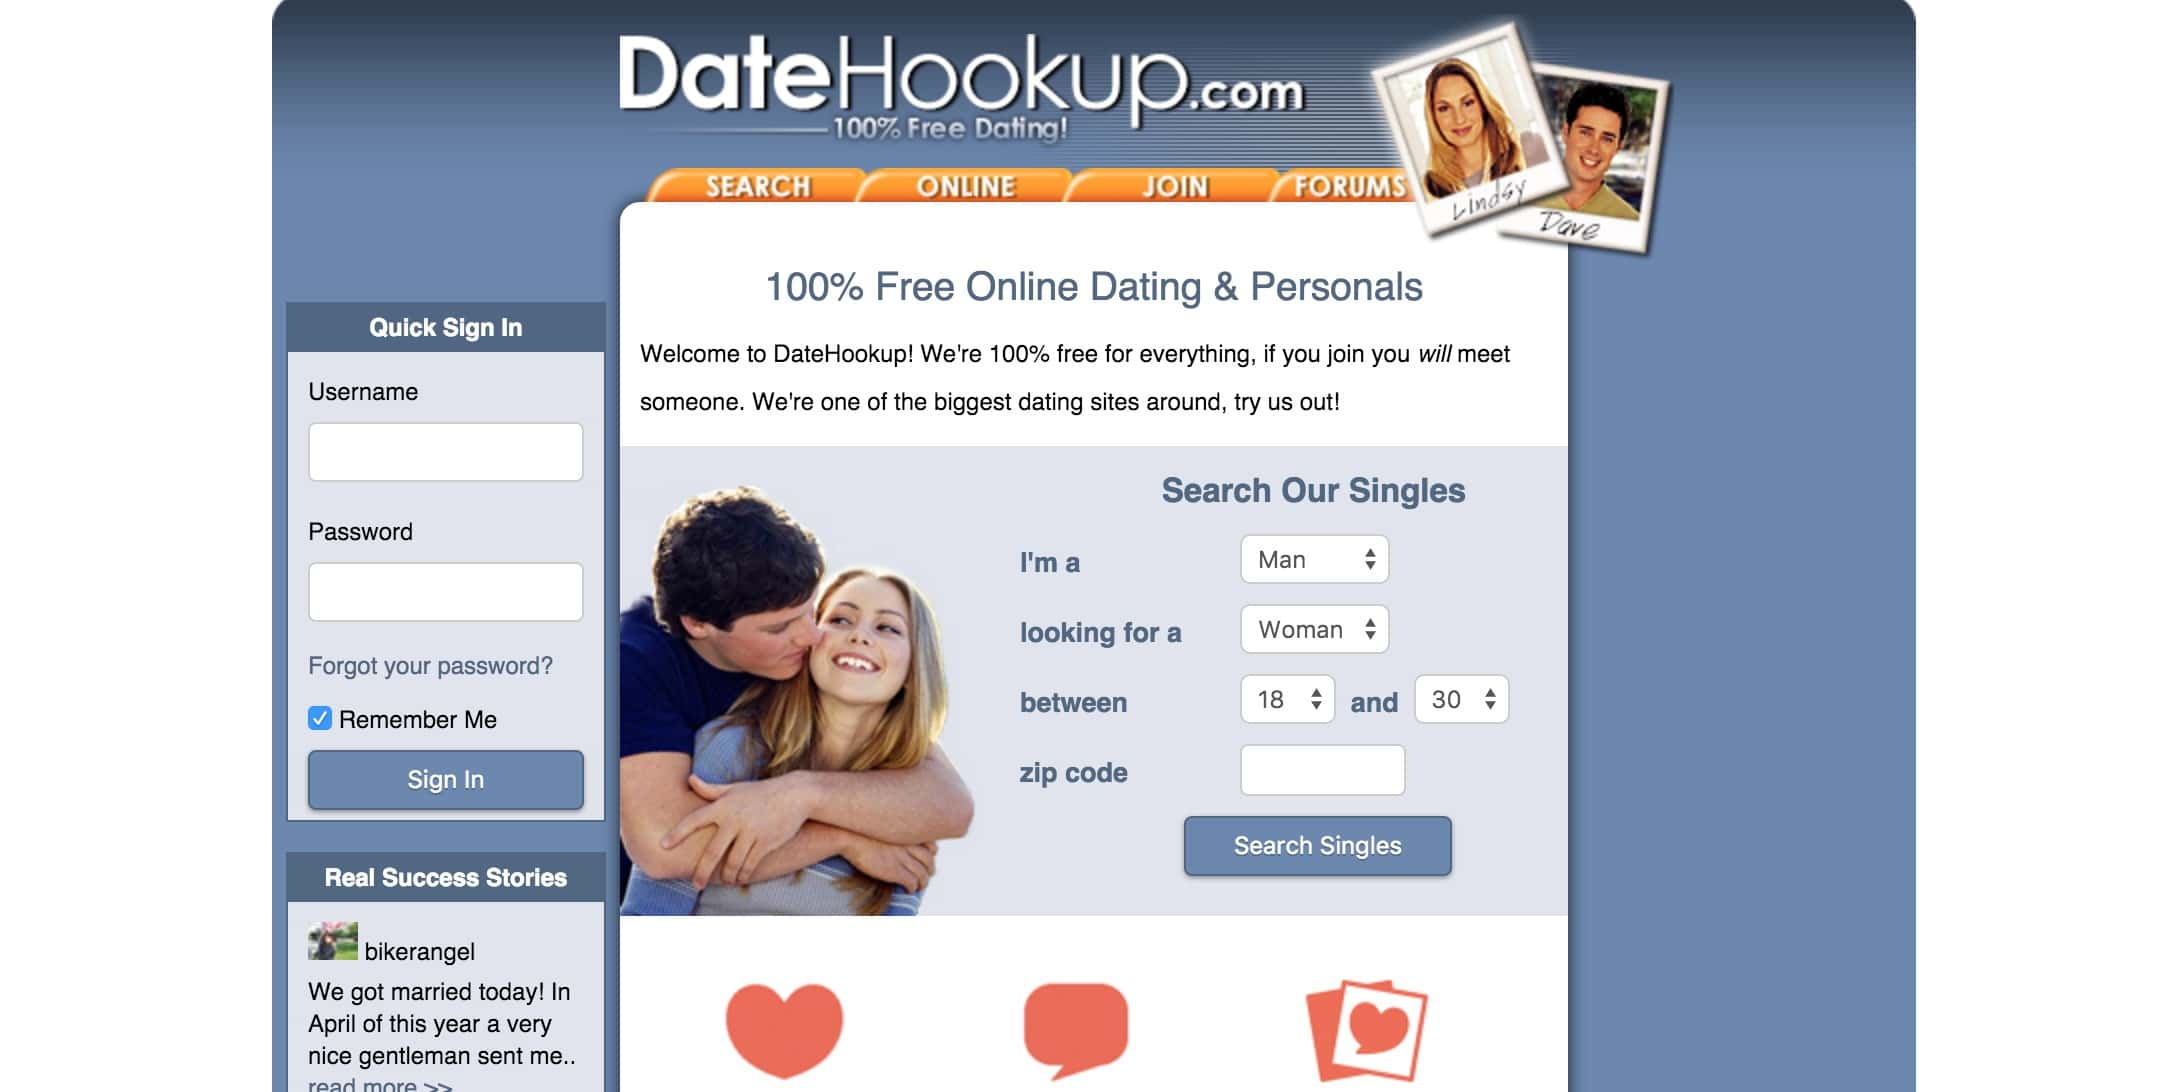 up for it dating website review